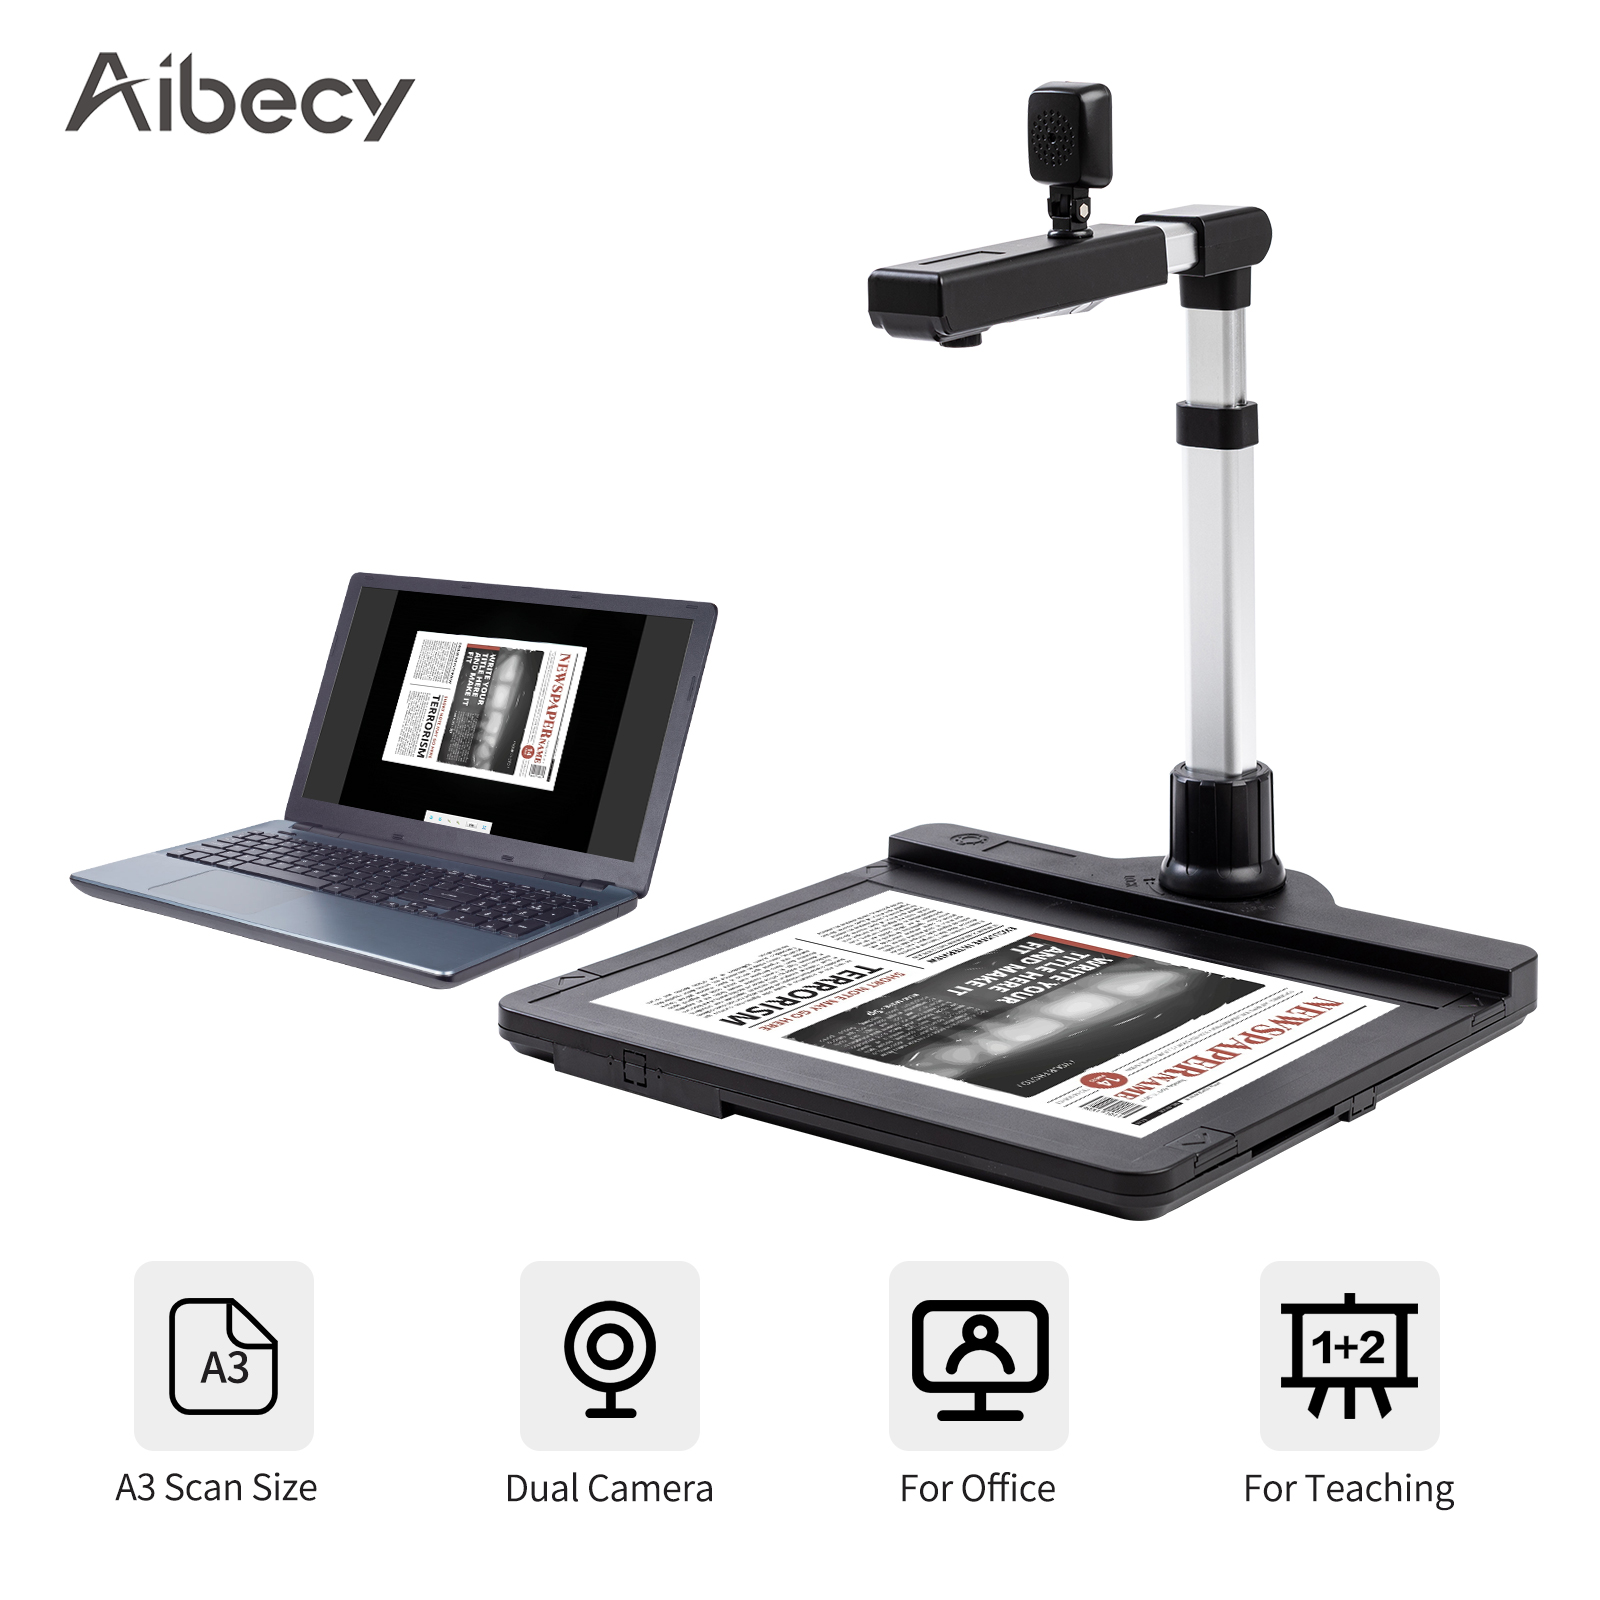 Aibecy Document Camera Scanner A3 Capture Size Dual Camera USB2.0 High Speed Scanner for Online Teaching Distance Education